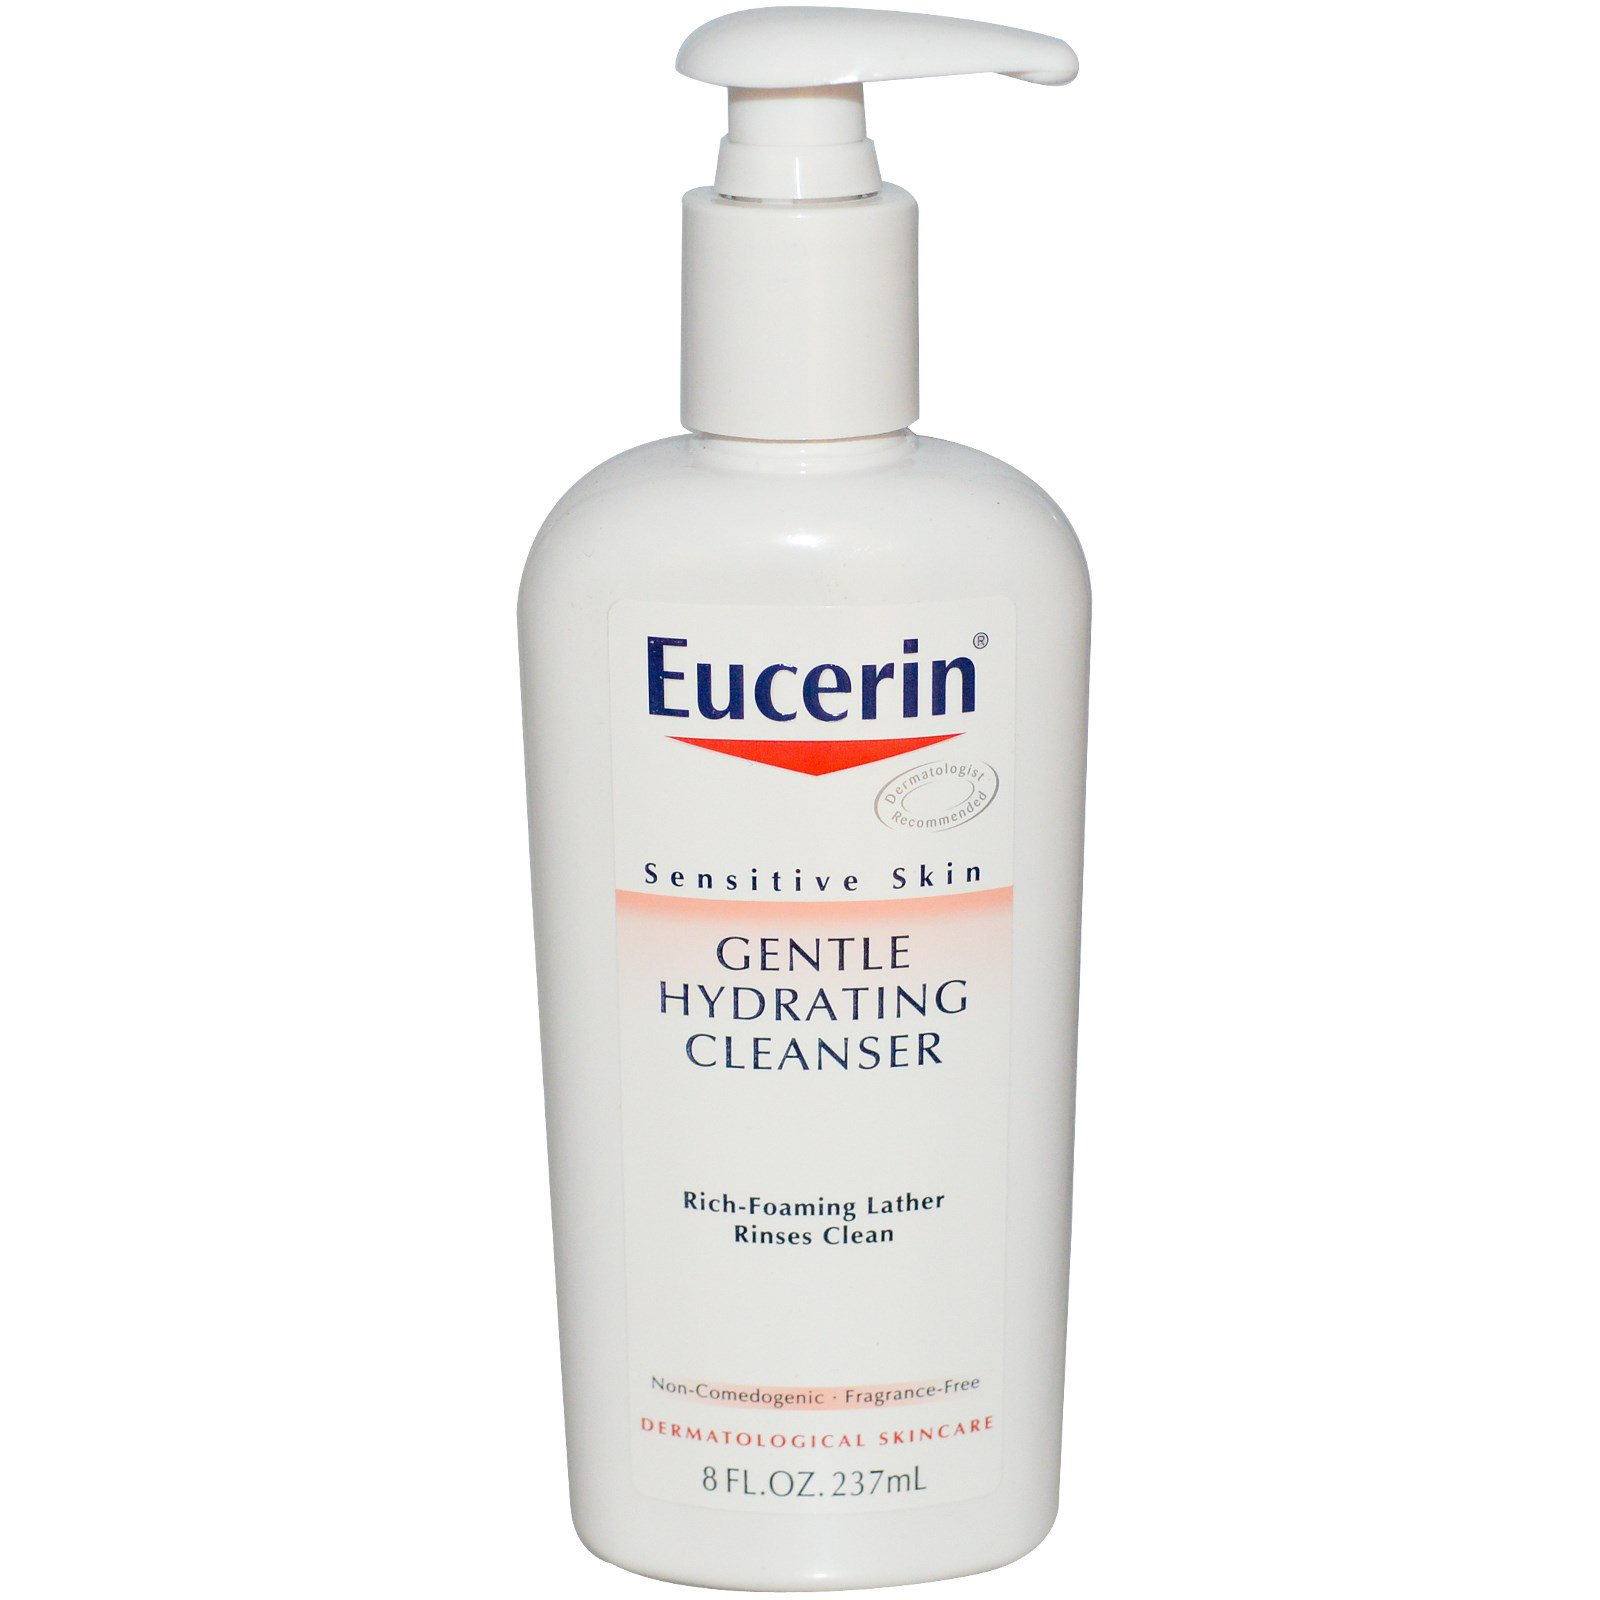 Eucerin Gentle Hydrating Cleanser Fragrance Free 8 Fl Oz 237 Ml Cetaphil Skin 500